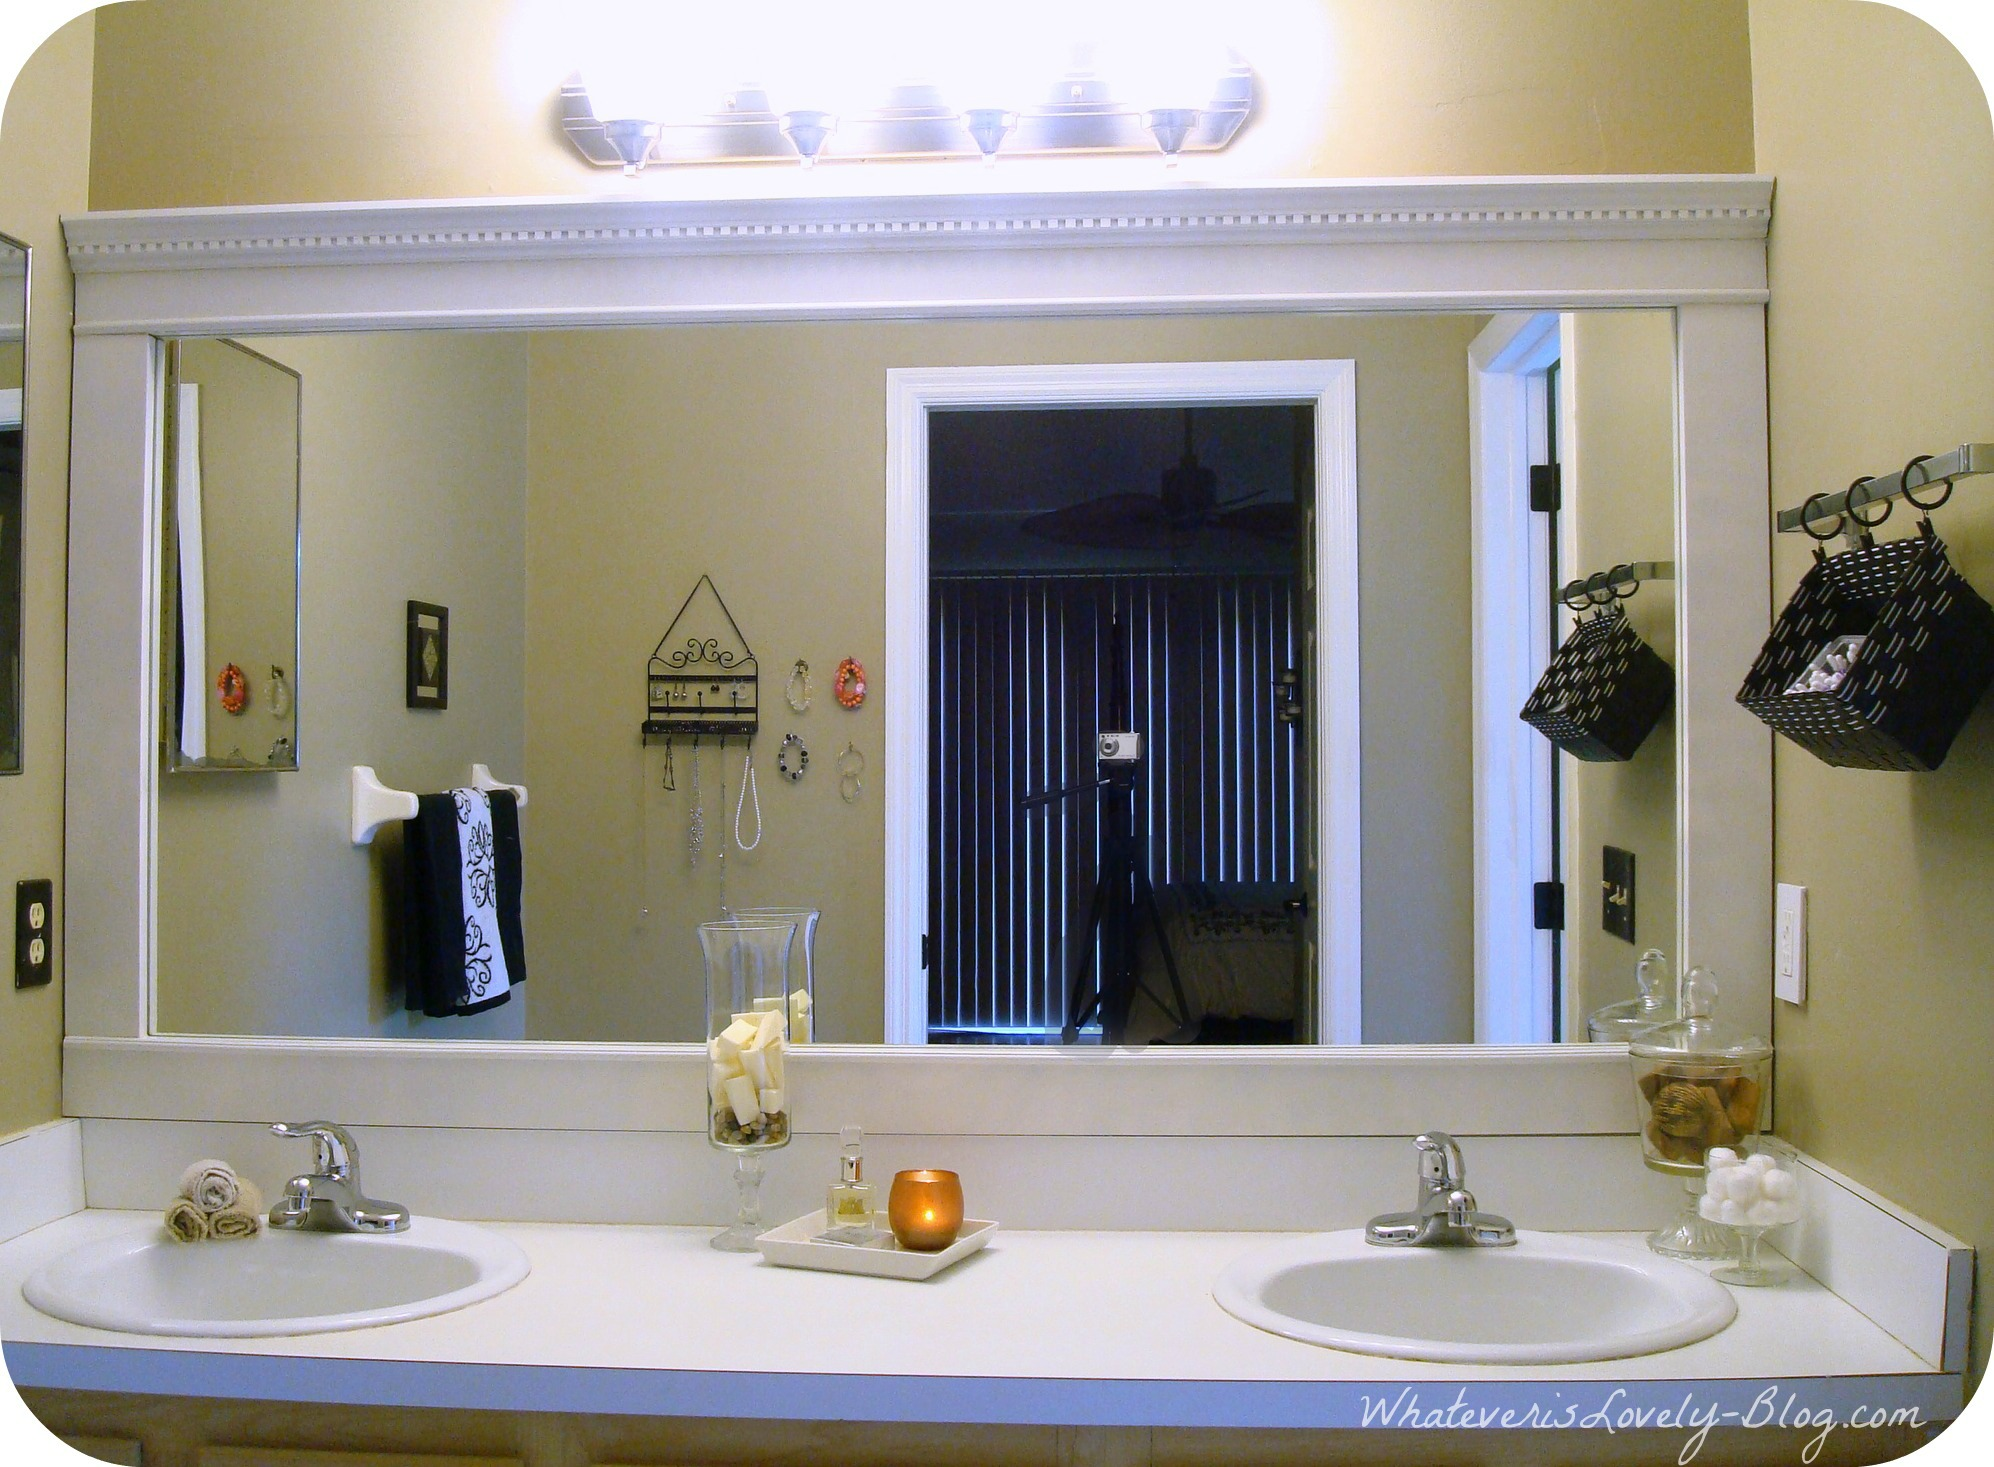 Bathroom With Mirrors Bathroom Tricks The Right Mirror For Your Bathroom May Do Wonders